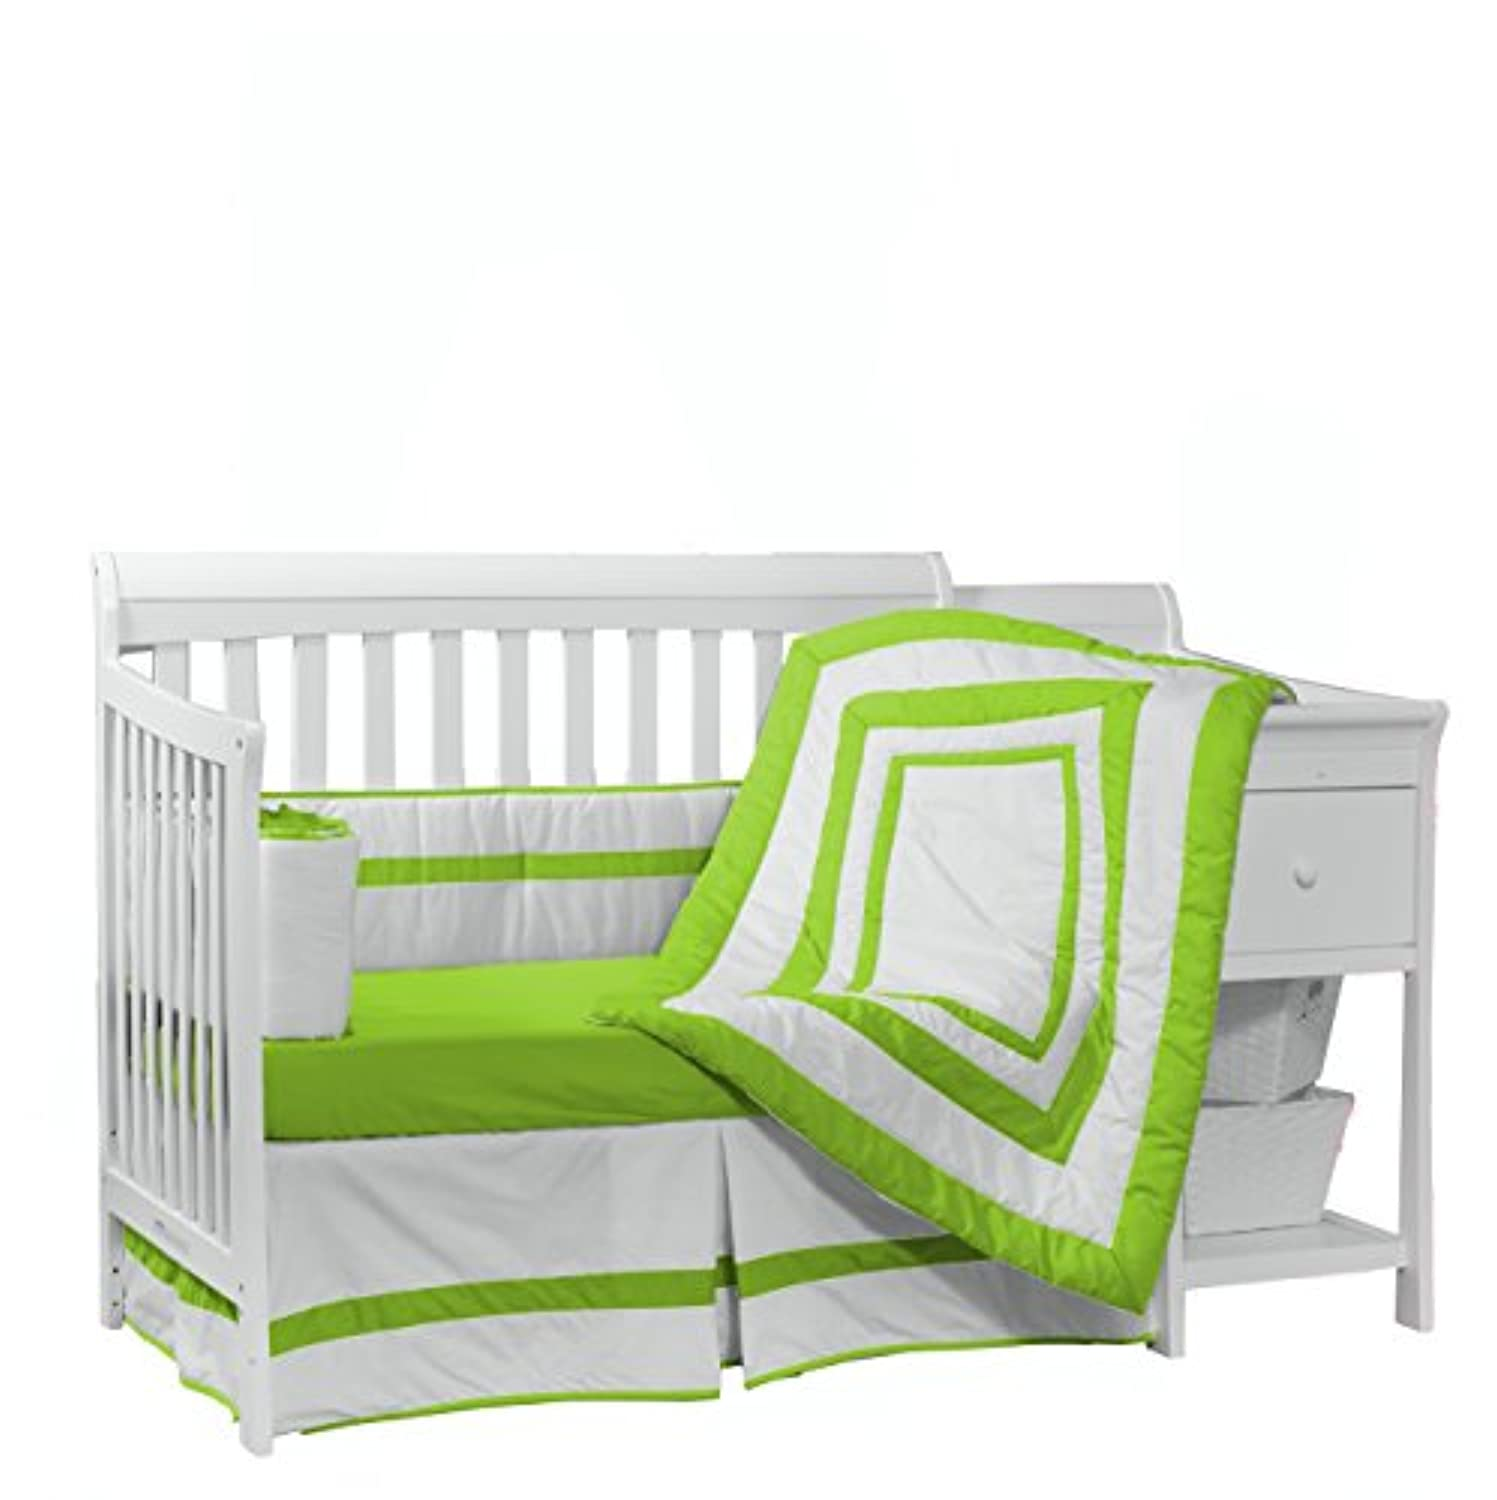 Baby Doll Bedding Modern Hotel Style Crib Bedding Set, Green Apple by BabyDoll Bedding